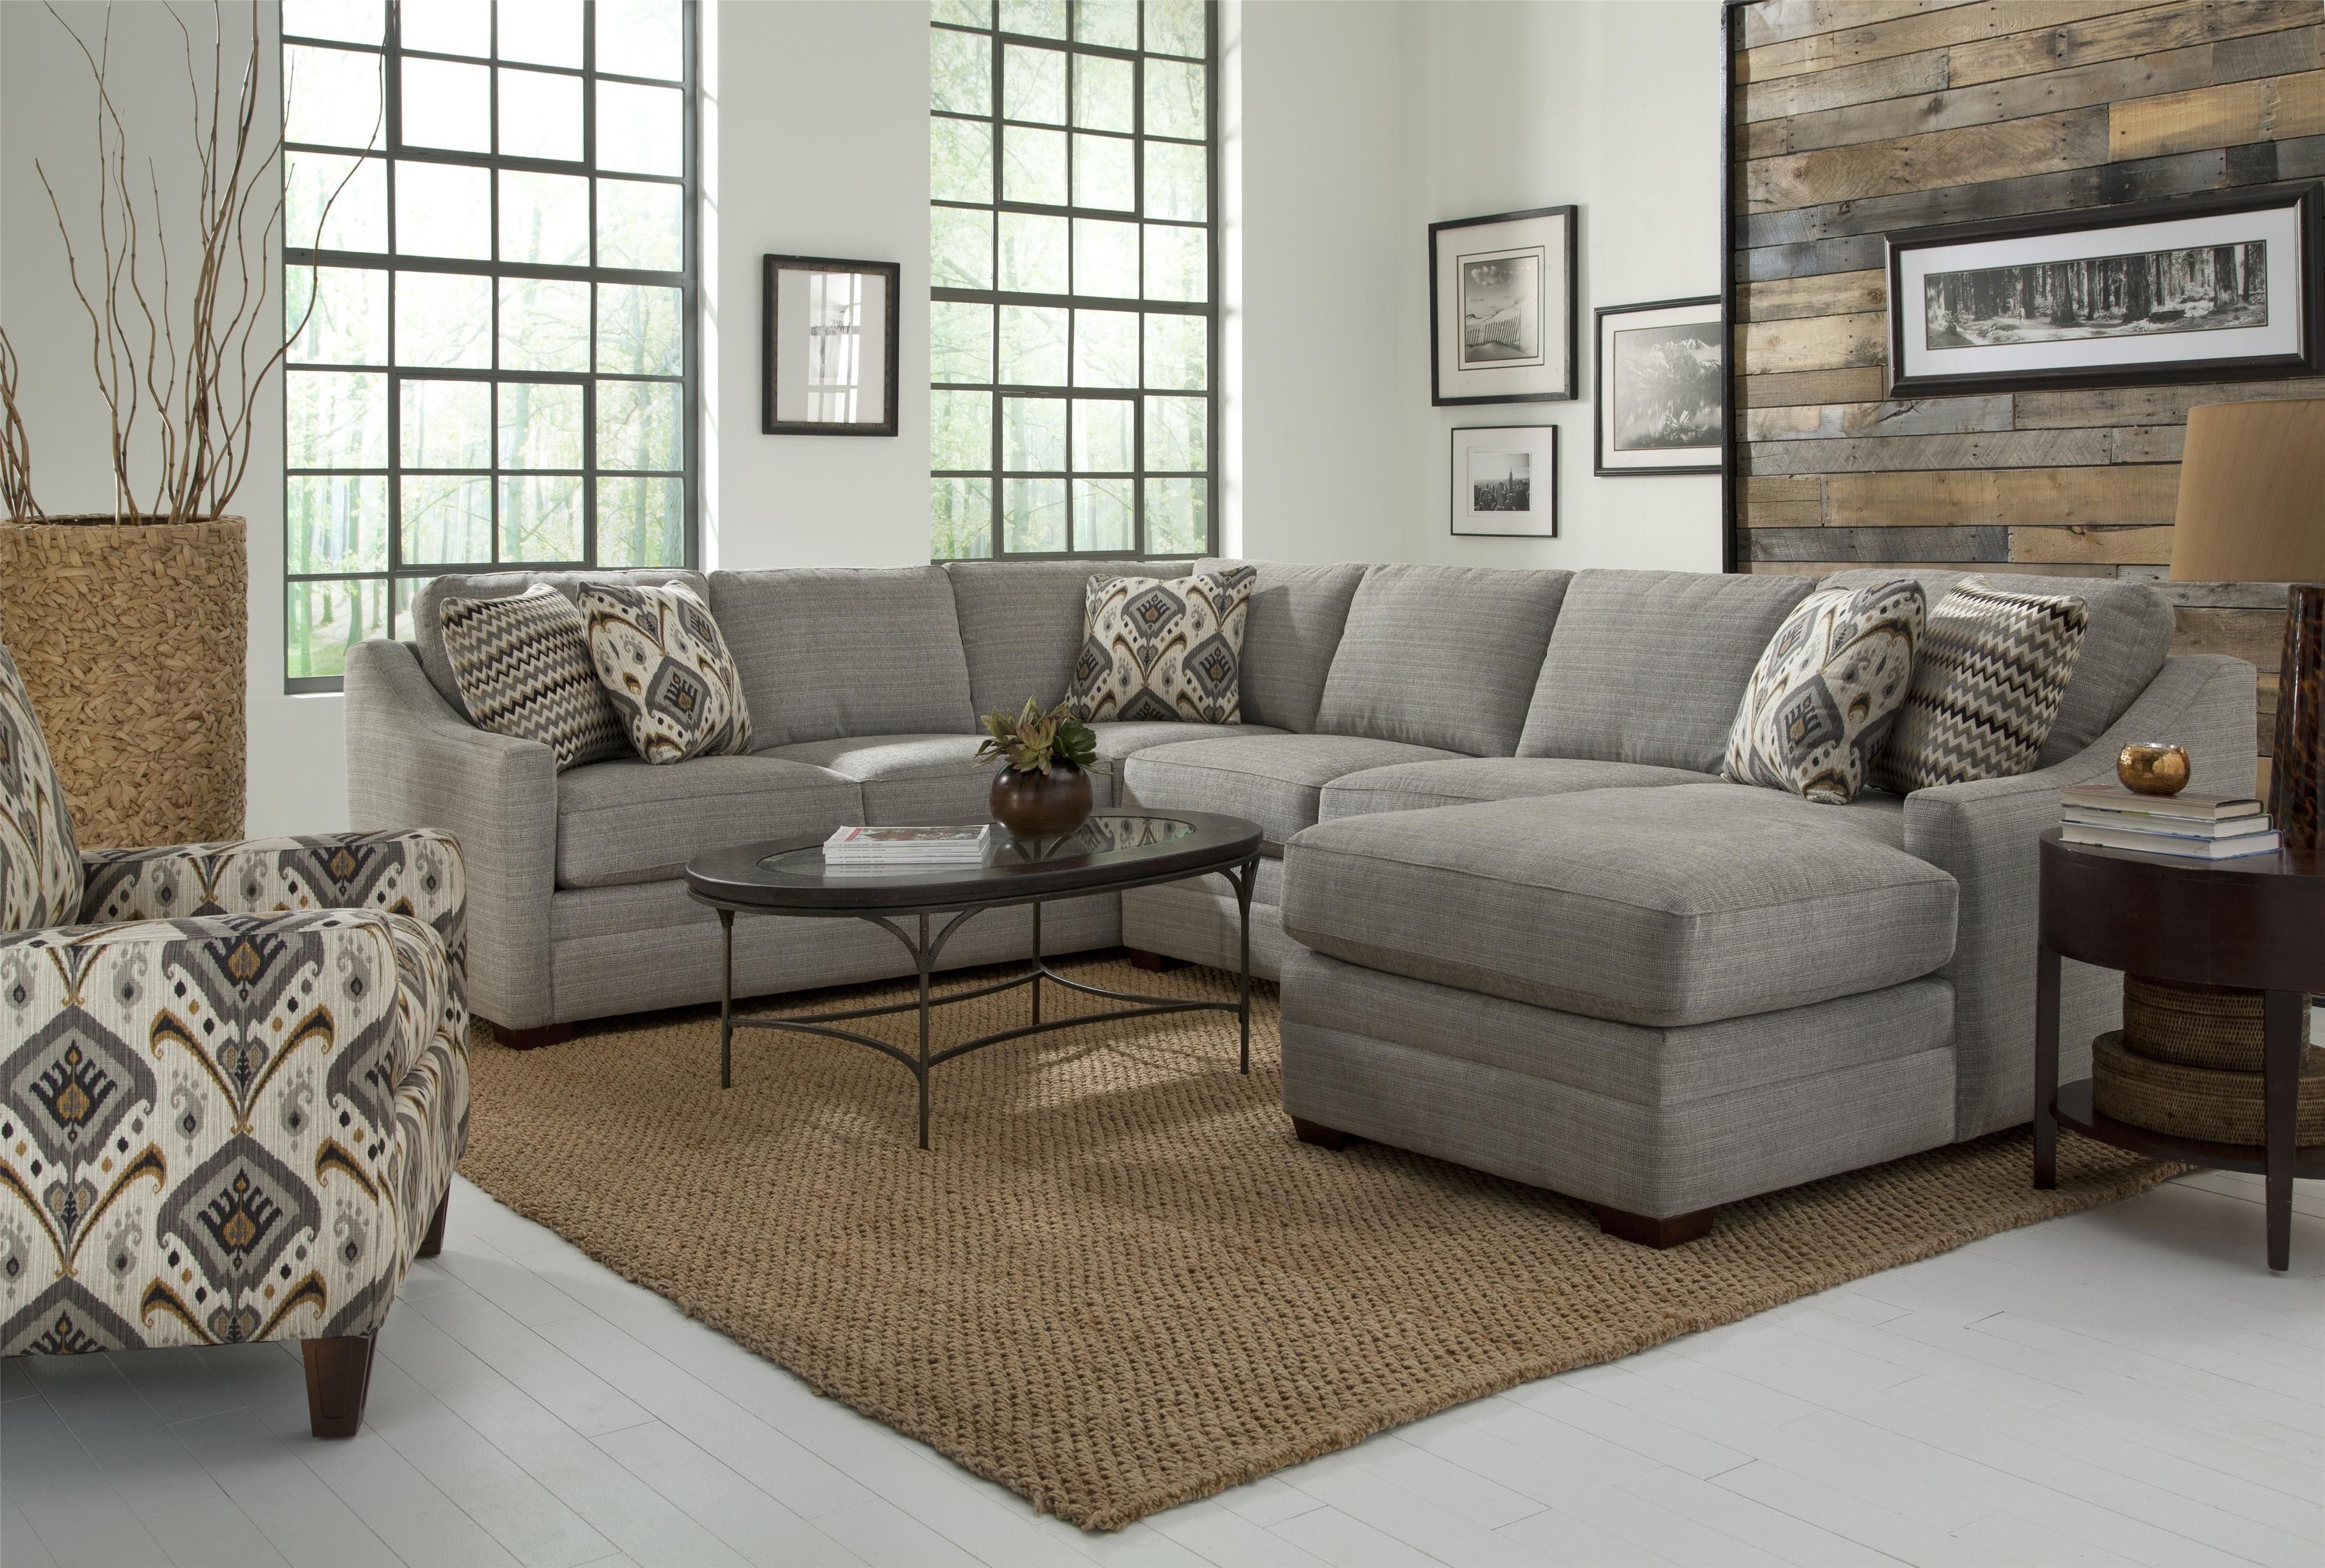 Craftmaster F9 Custom Collection Customizable Four Piece Sectional with regard to Avery 2 Piece Sectionals With Laf Armless Chaise (Image 9 of 30)